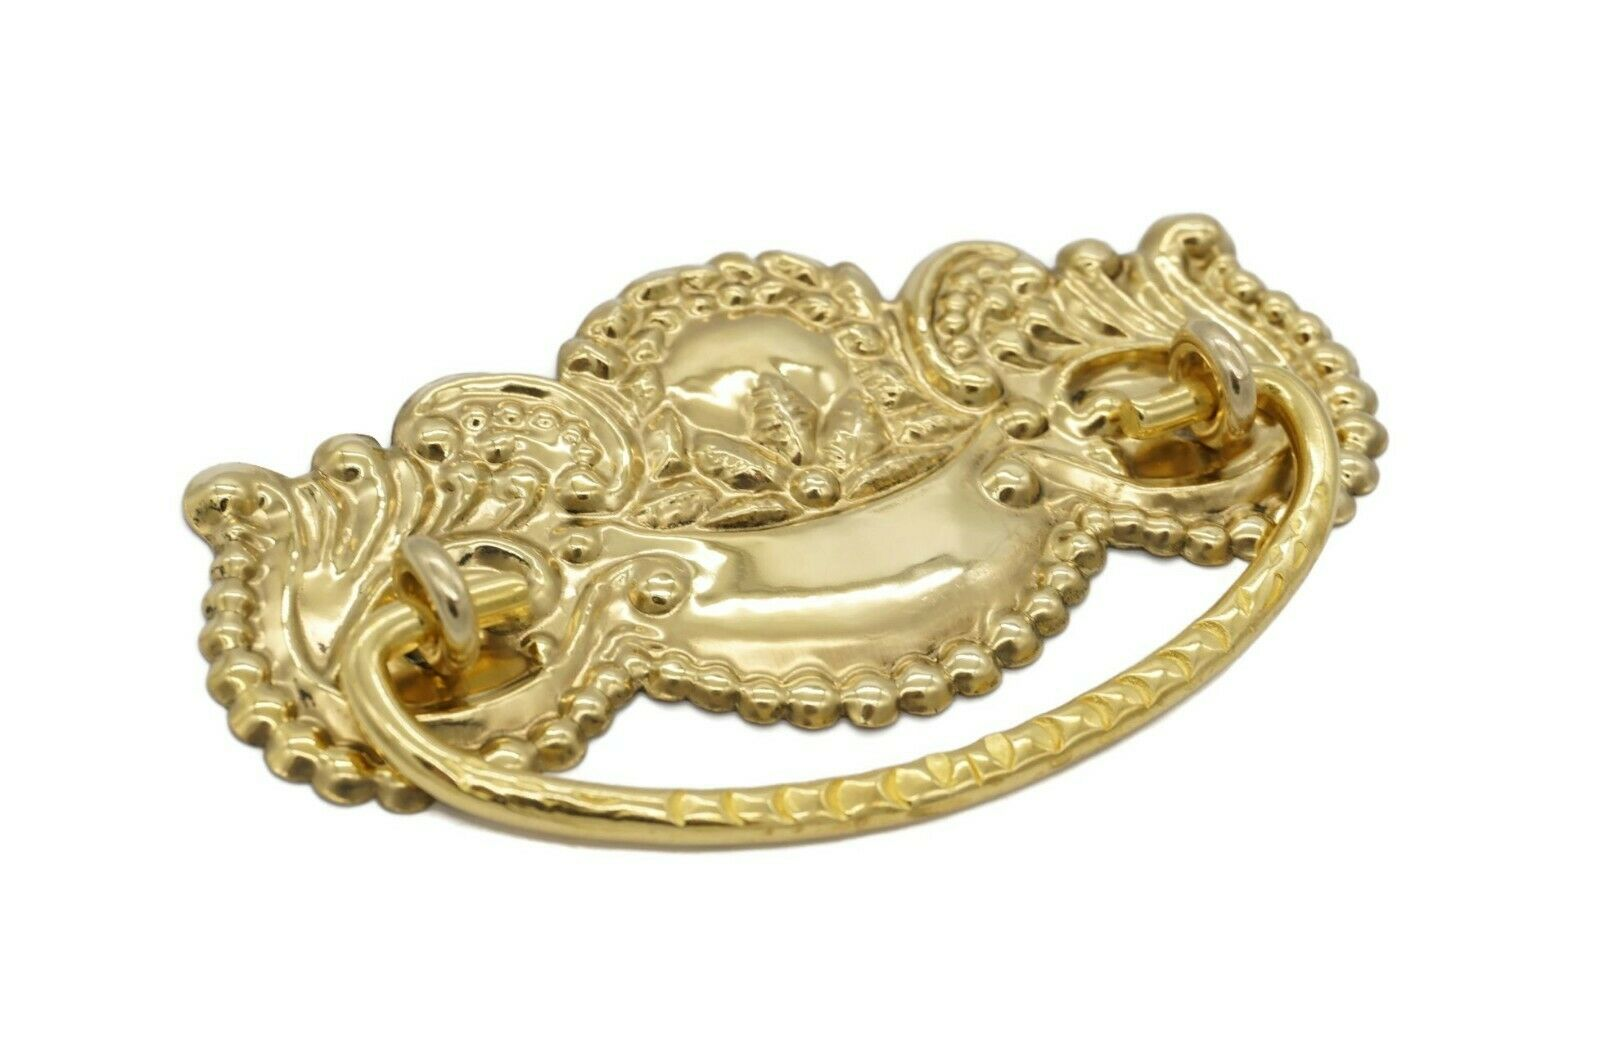 Antique Style Victorian Drawer Pull Eastlake Furniture 3 Cc Solid Brass